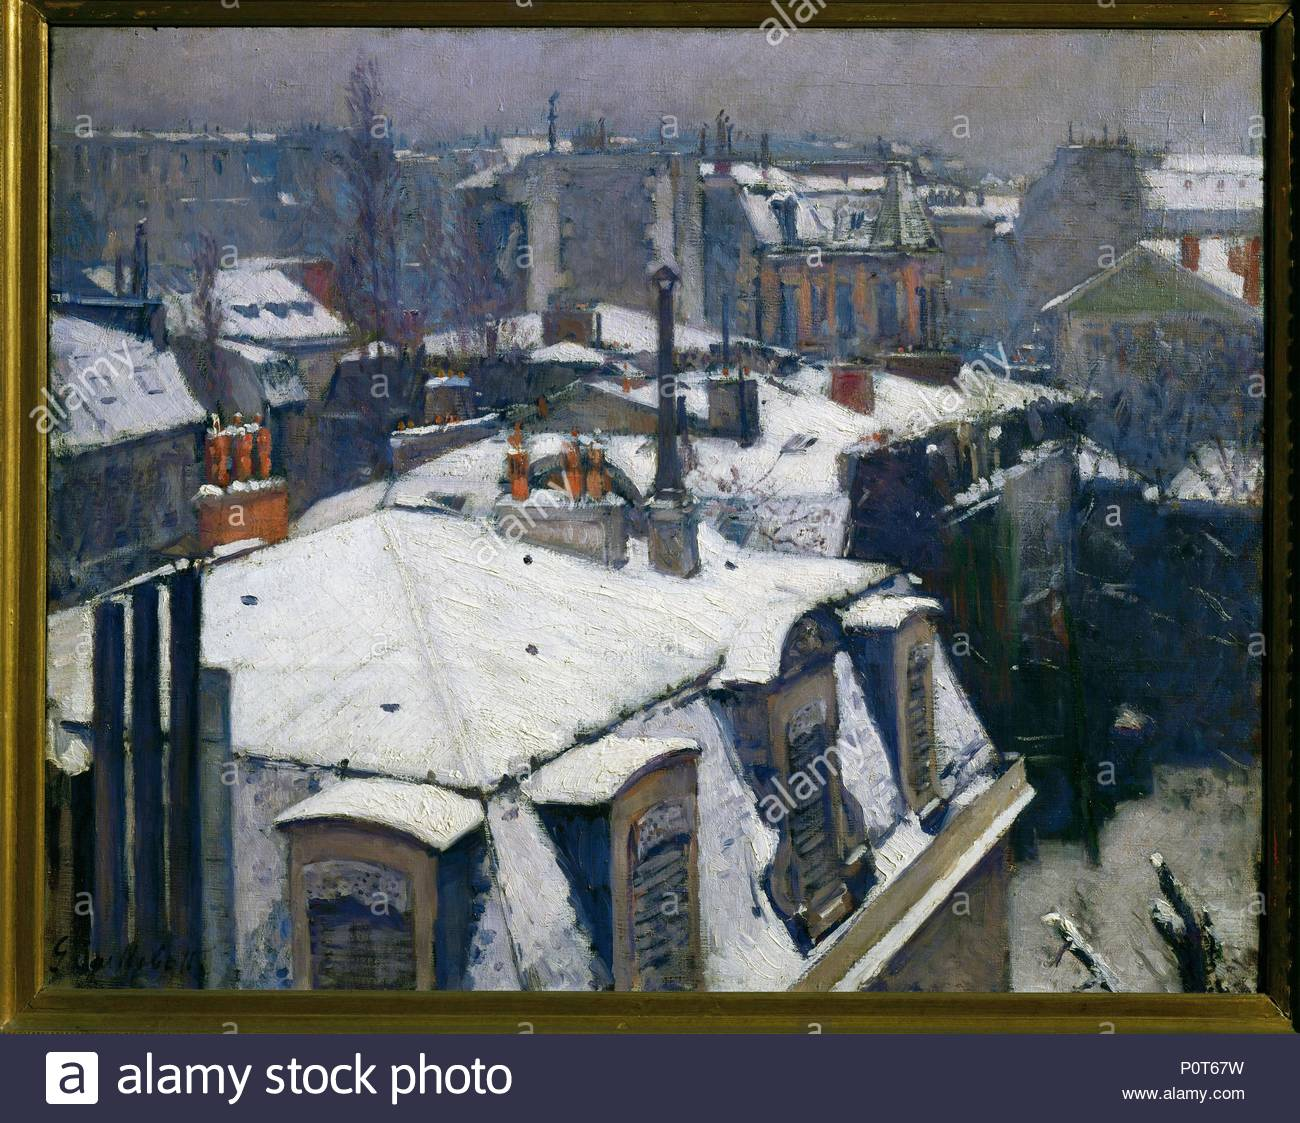 Toits sous la neige-Snow on roofs, 1878 Canvas, 64 x 82 cm R. F. 876. Author: Gustave Caillebotte (1848-1894). Location: Musee d'Orsay, Paris, France. - Stock Image